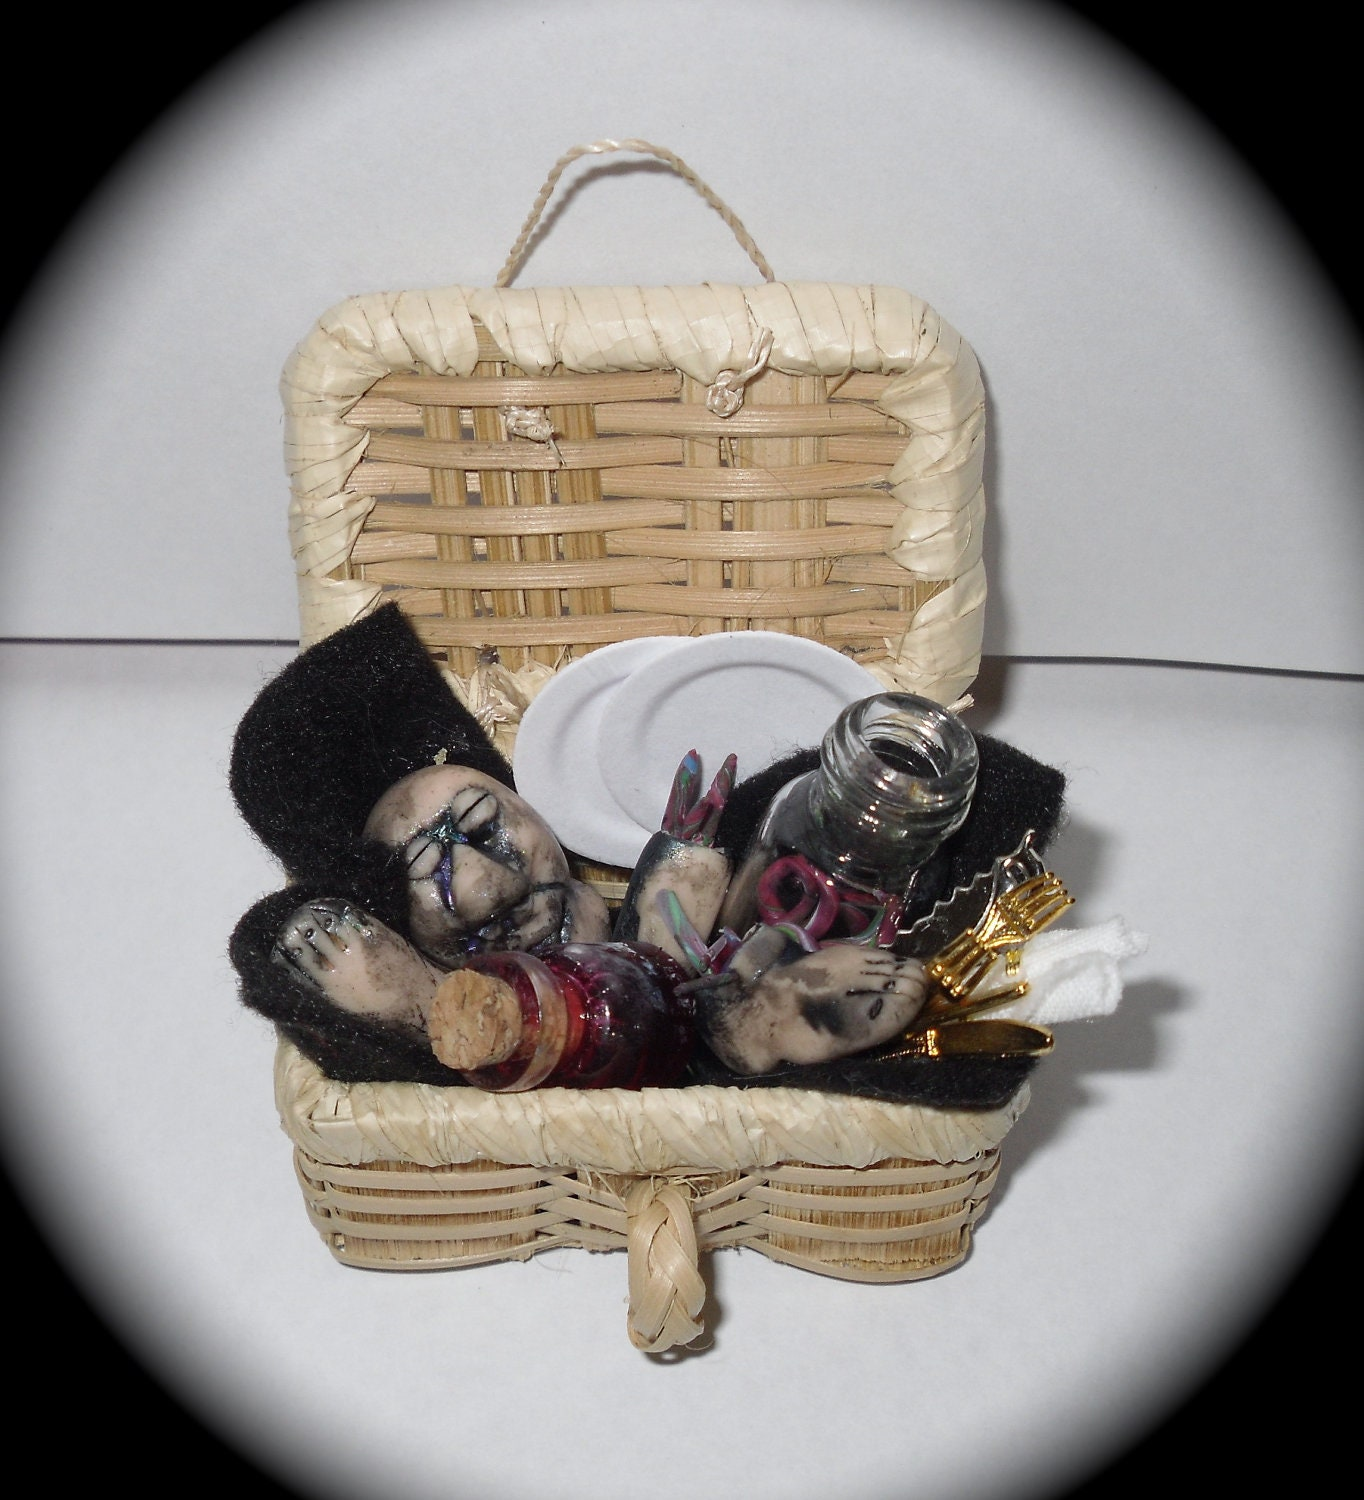 Gory halloween picnic basket - WITCHMINIATURES